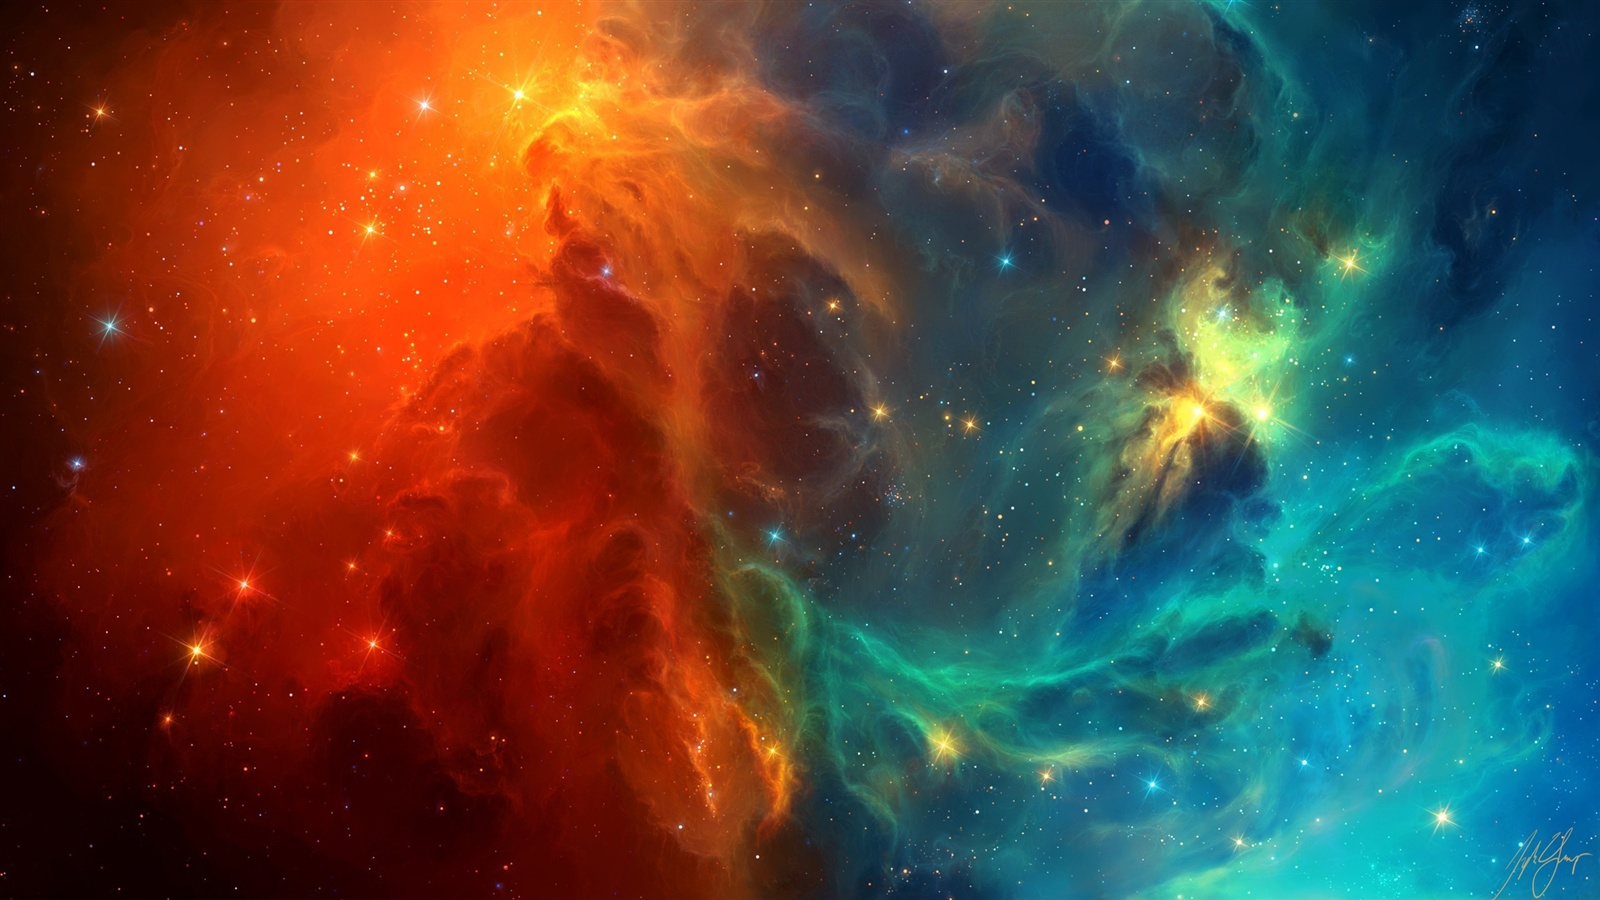 Space nebula blue and red galaxies wallpaper 1600x900 - Space wallpaper 1600x900 ...